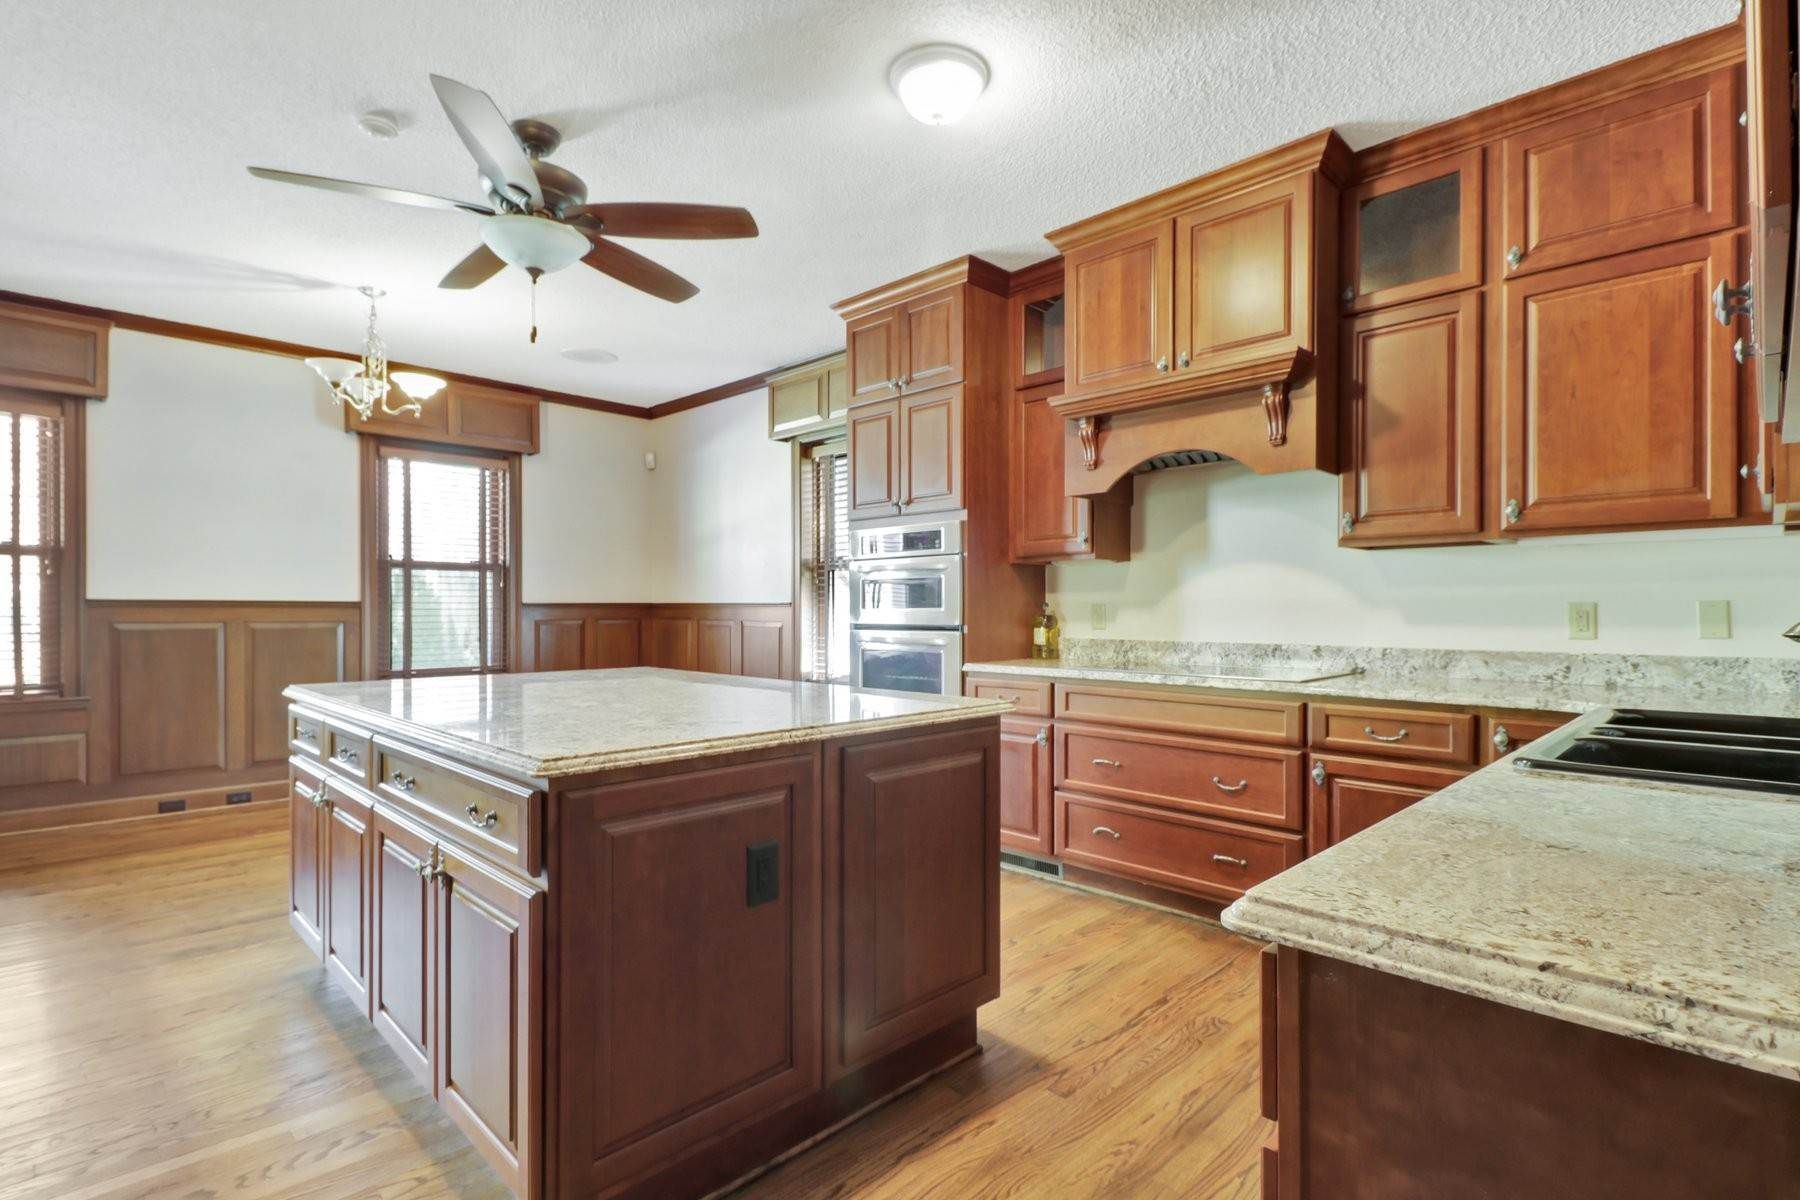 4. Single Family Homes for Sale at Lovely Traditional Brick Home In Habersham Woods 116 McLaws Street Savannah, Georgia 31405 United States